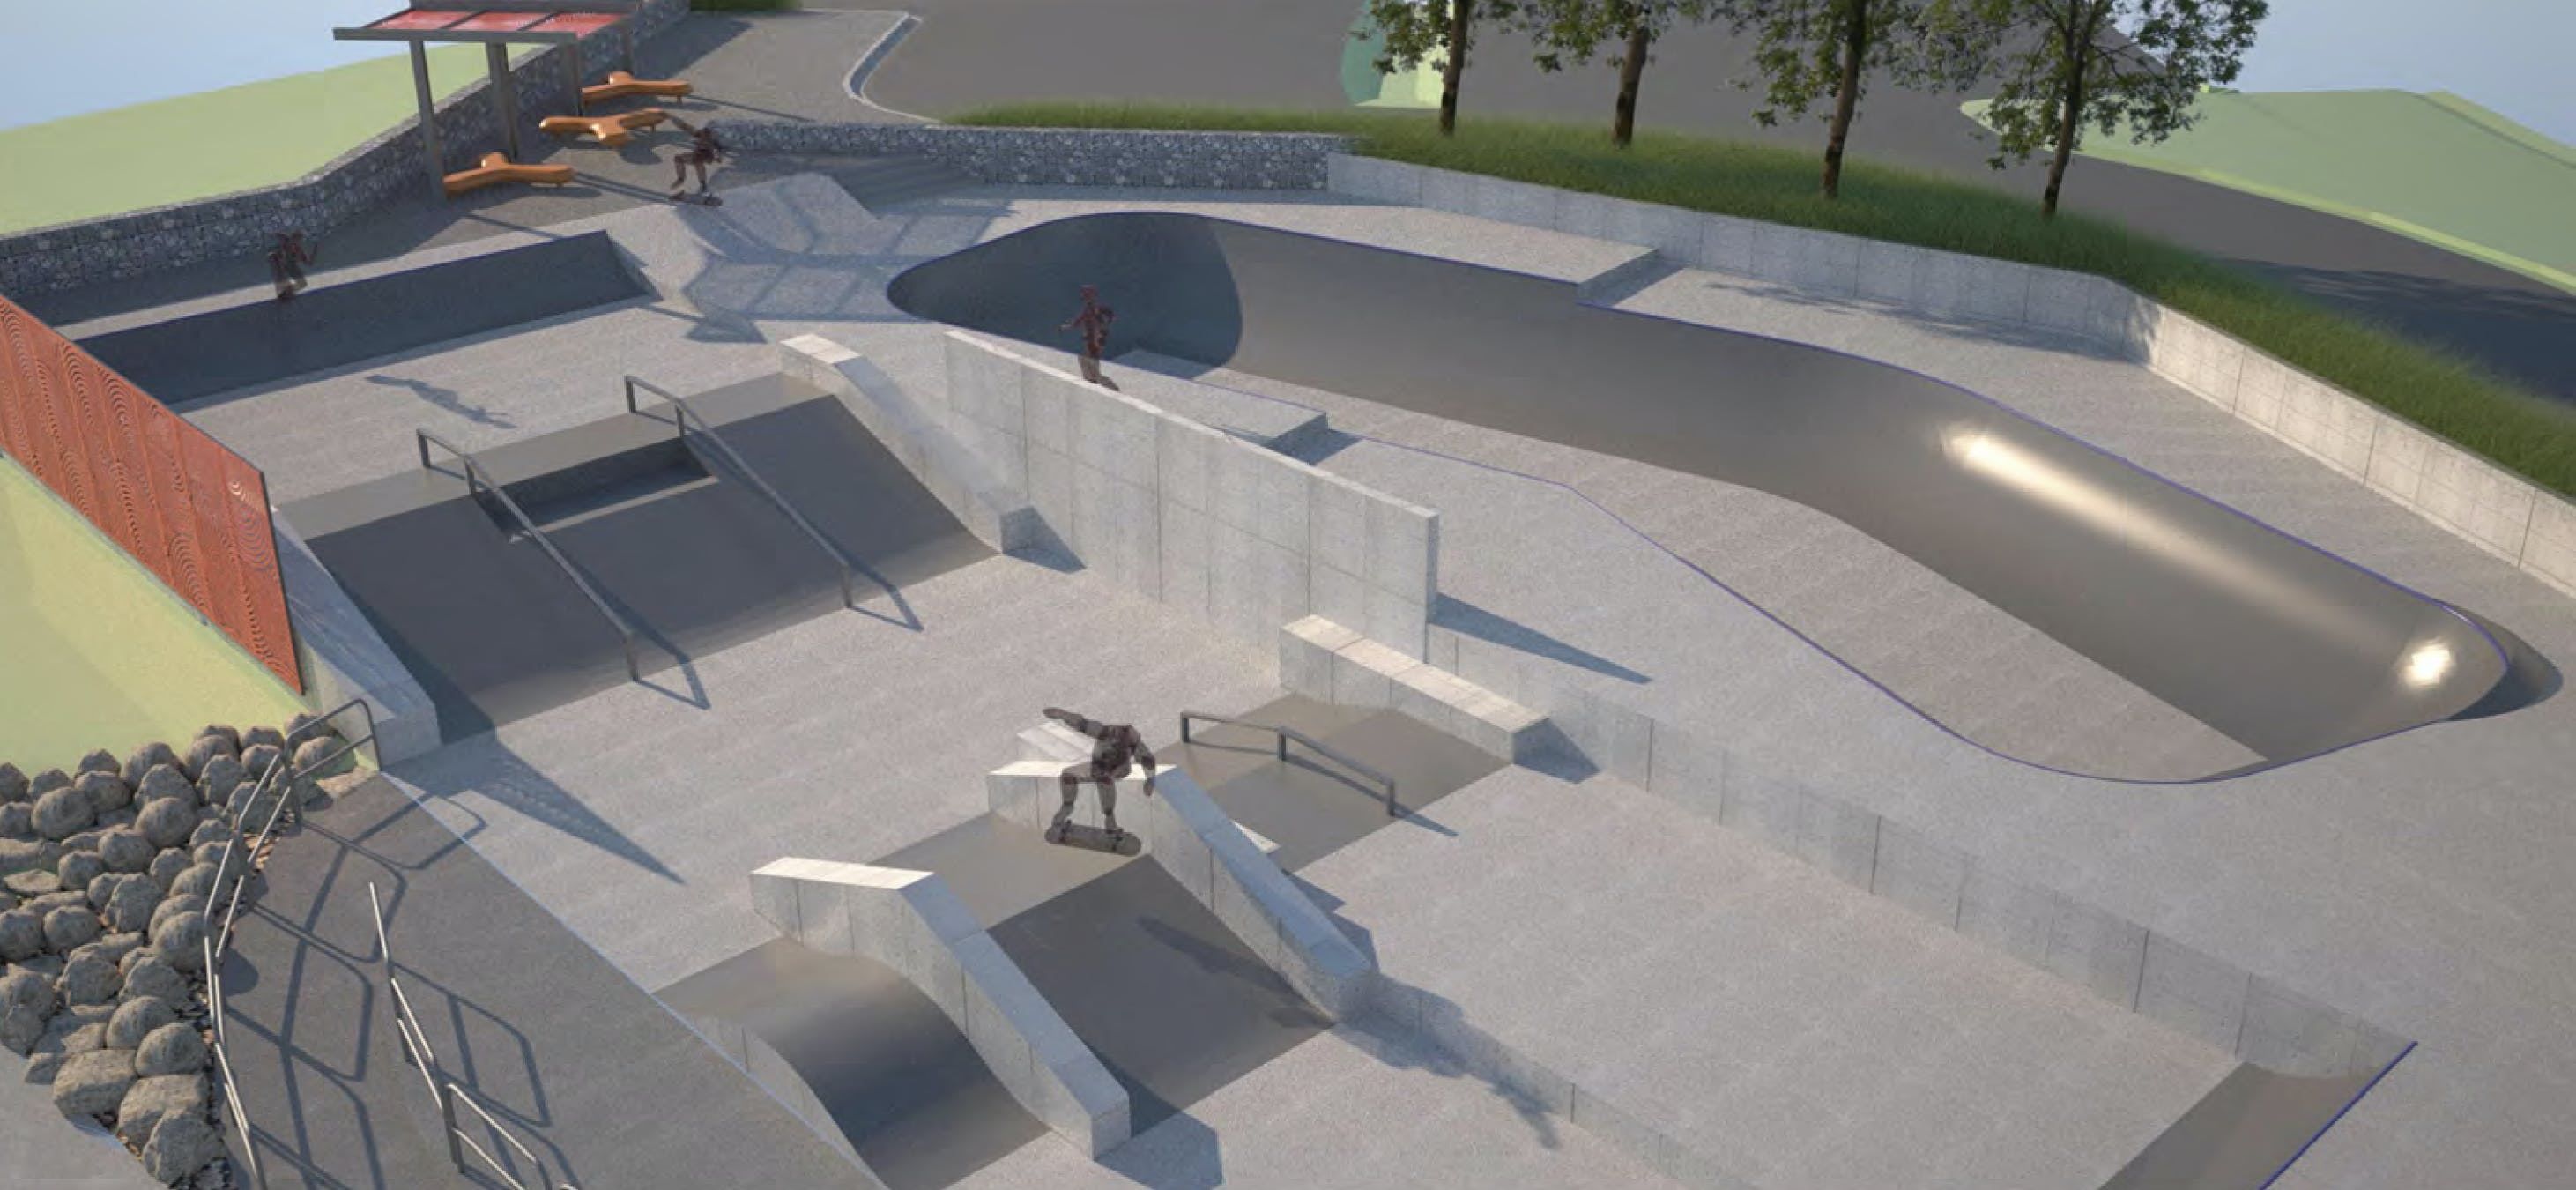 Proposed skate park perspective 2